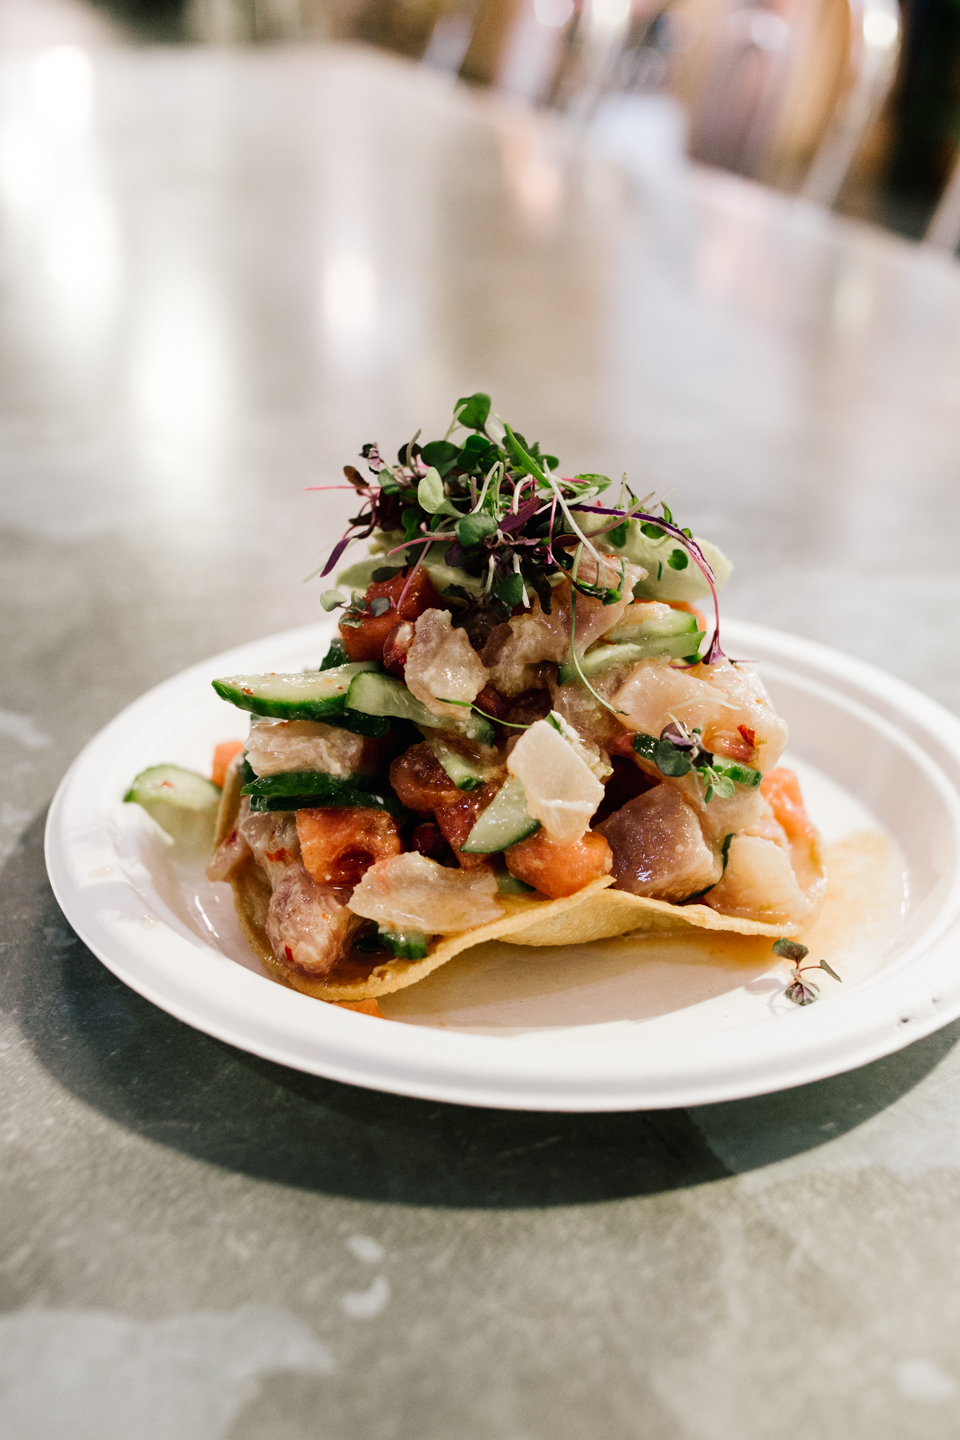 The Five Best Mexican Food Spots In Santa Barbara To Eat At